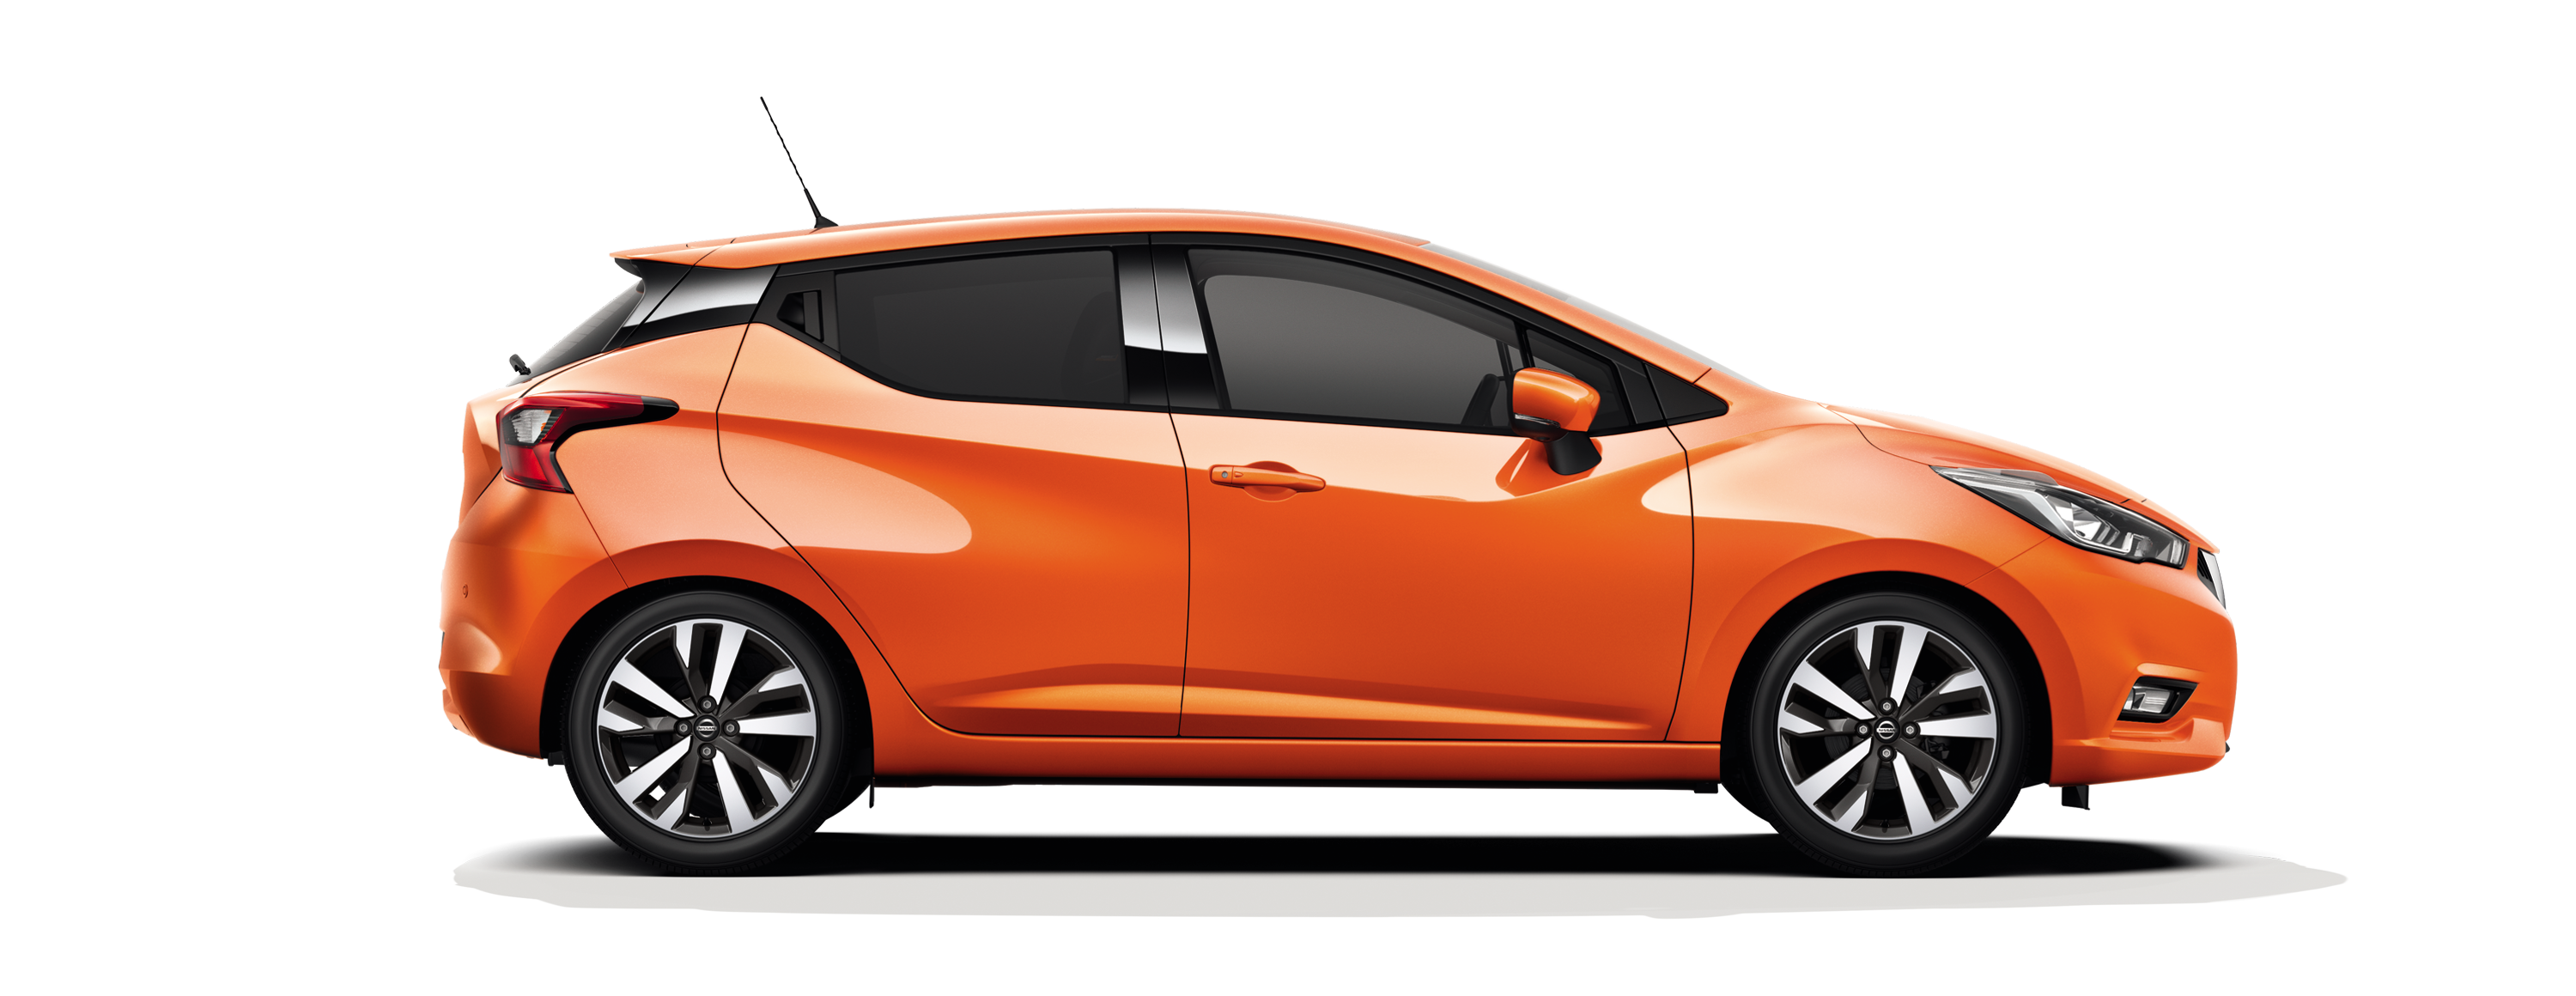 Desktop_Micra_orange_png.png